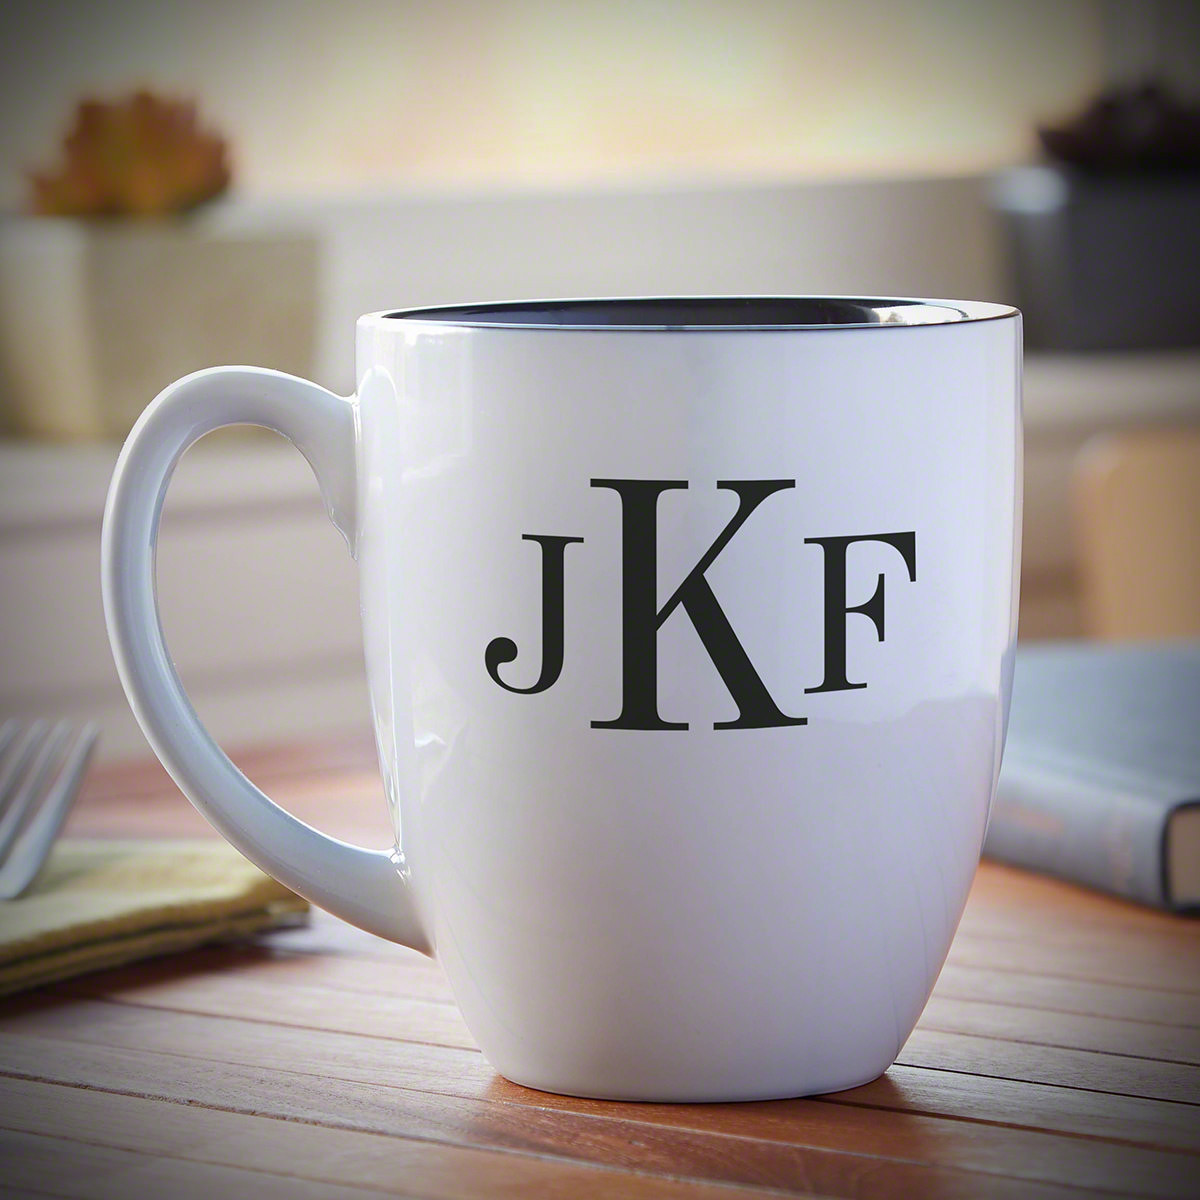 For those who can't wake up until after a hot cup of morning caffeine, our Classic Monogram personalized coffee mug is a useful & unique gift for all occasions. Glossy and white on the outside, we engrave the side with up to three letters of custom text. #mug